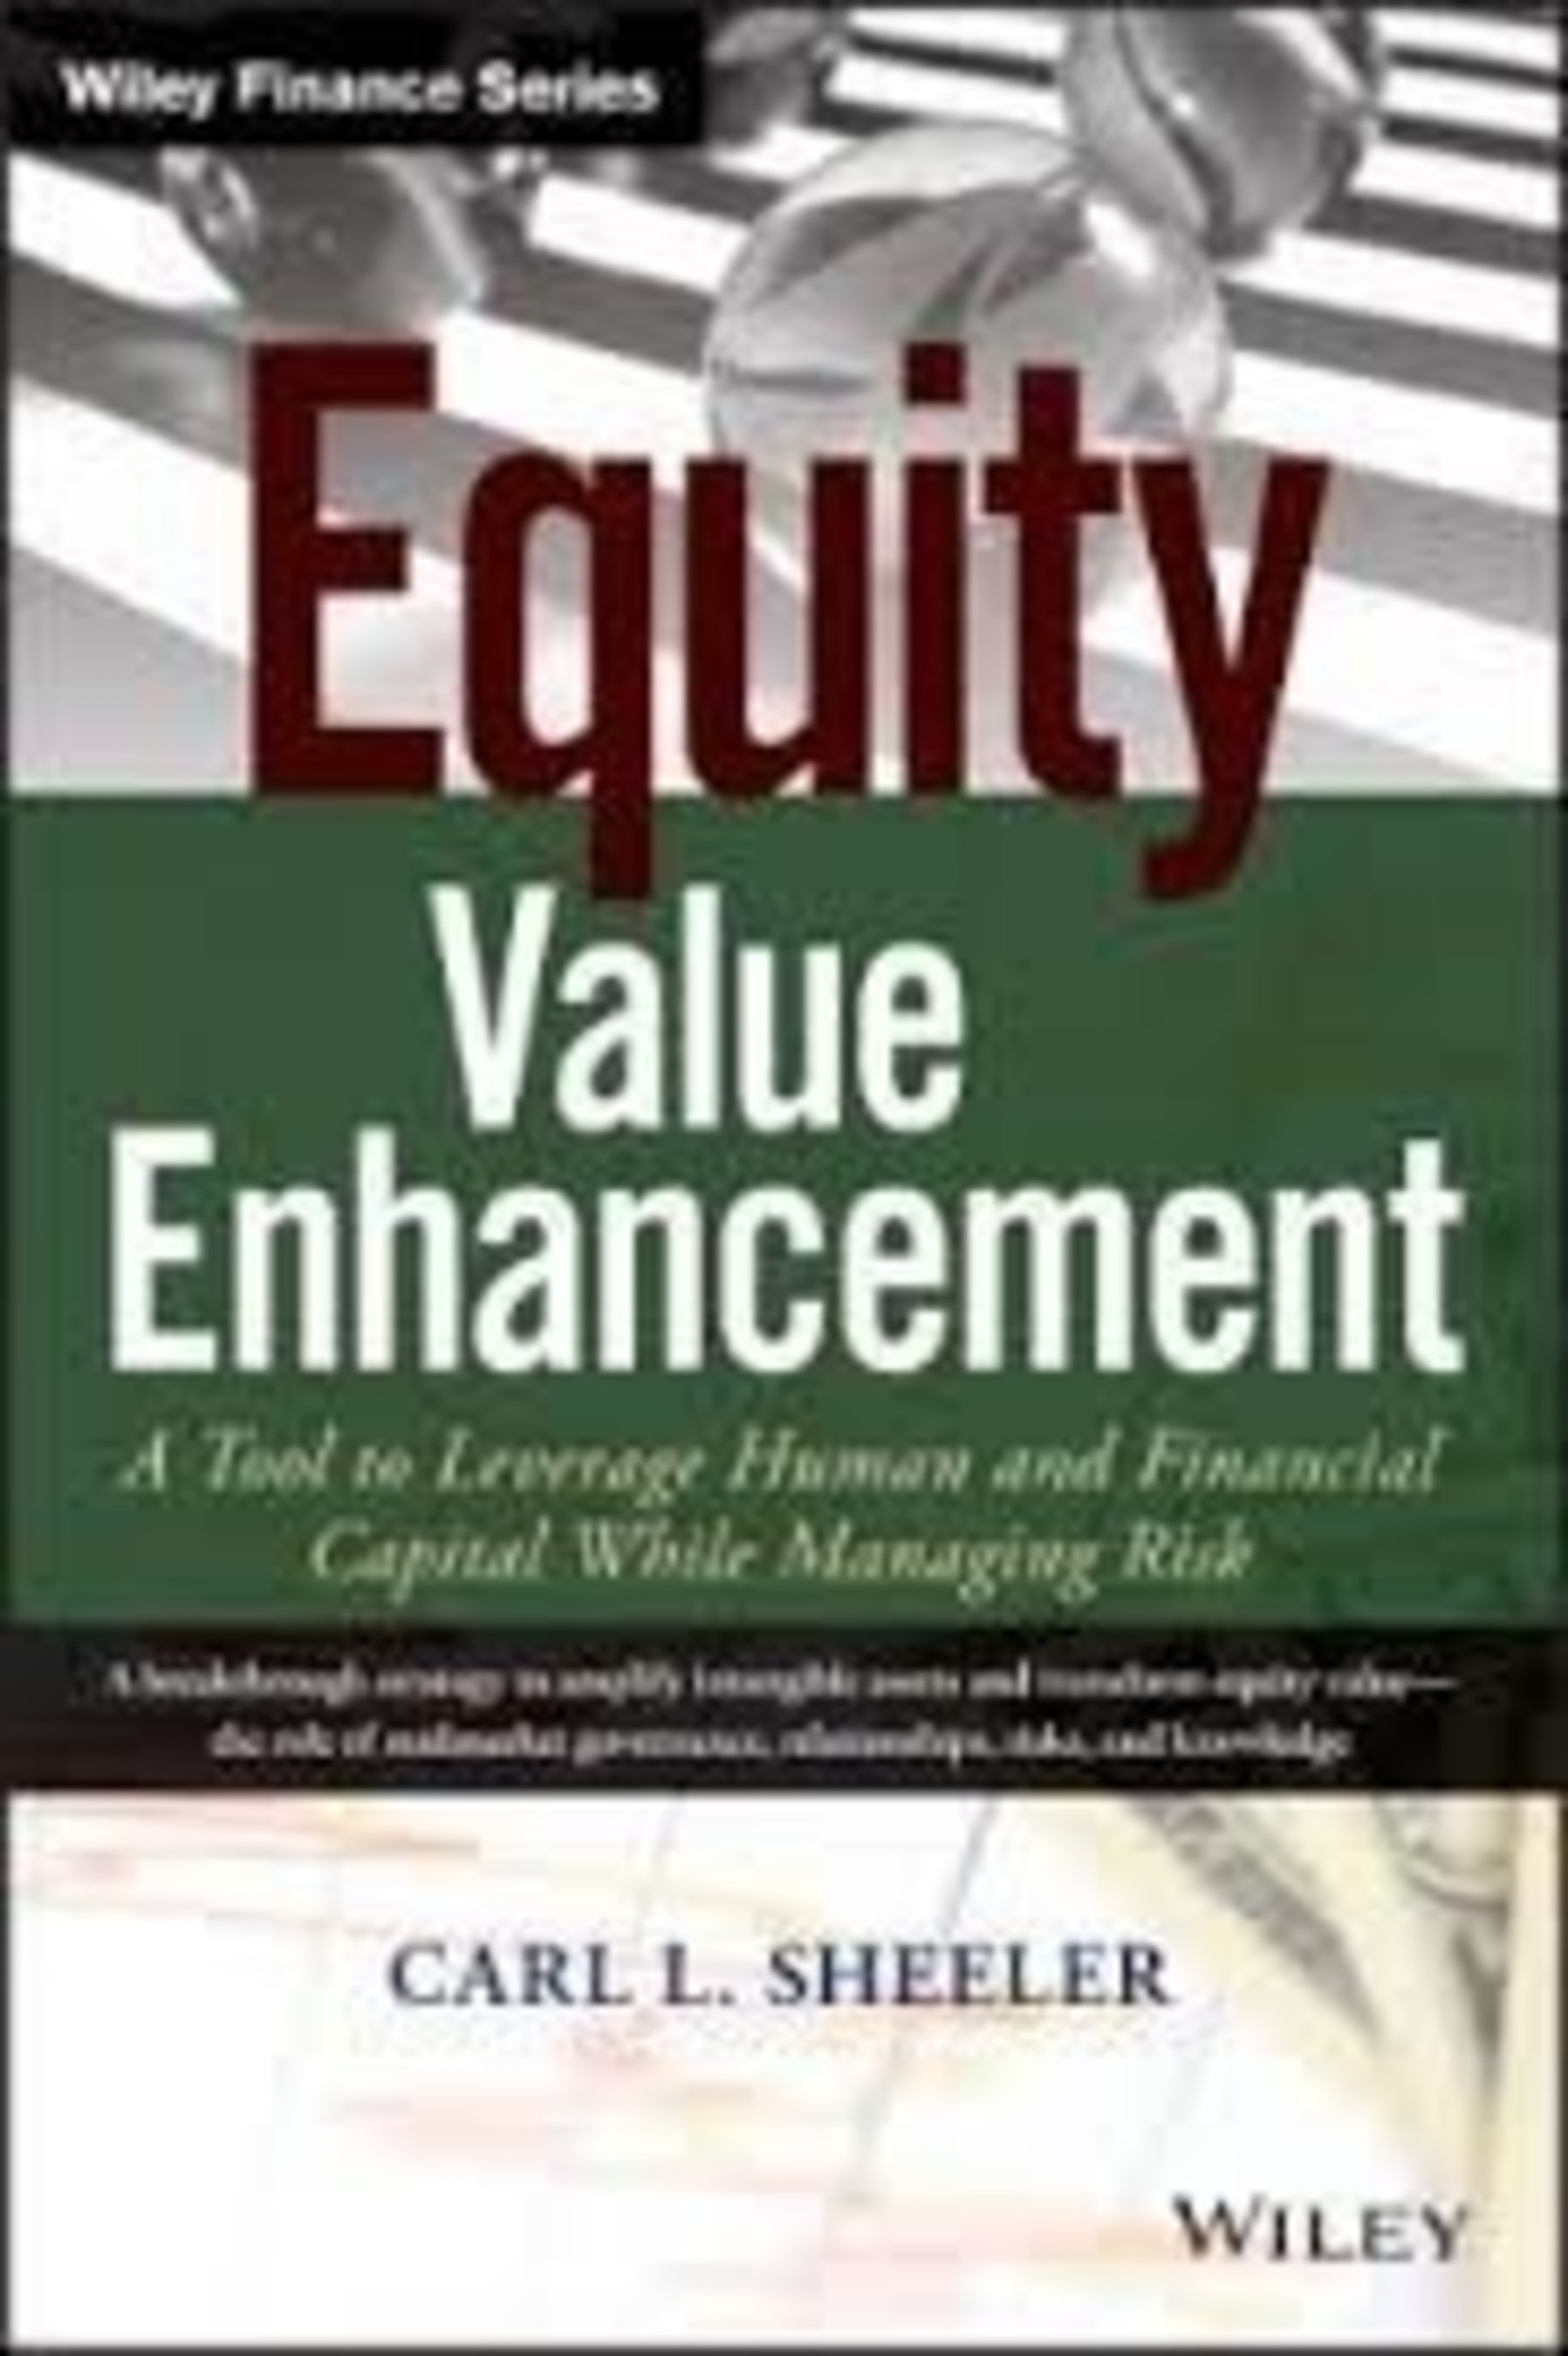 Equity Value Enhancement Author Am Aa S 2015 Thought Leader Of The Year Dr Carl Sheeler Shares Proven Tips For Reducing Risks While Increasing Business Values